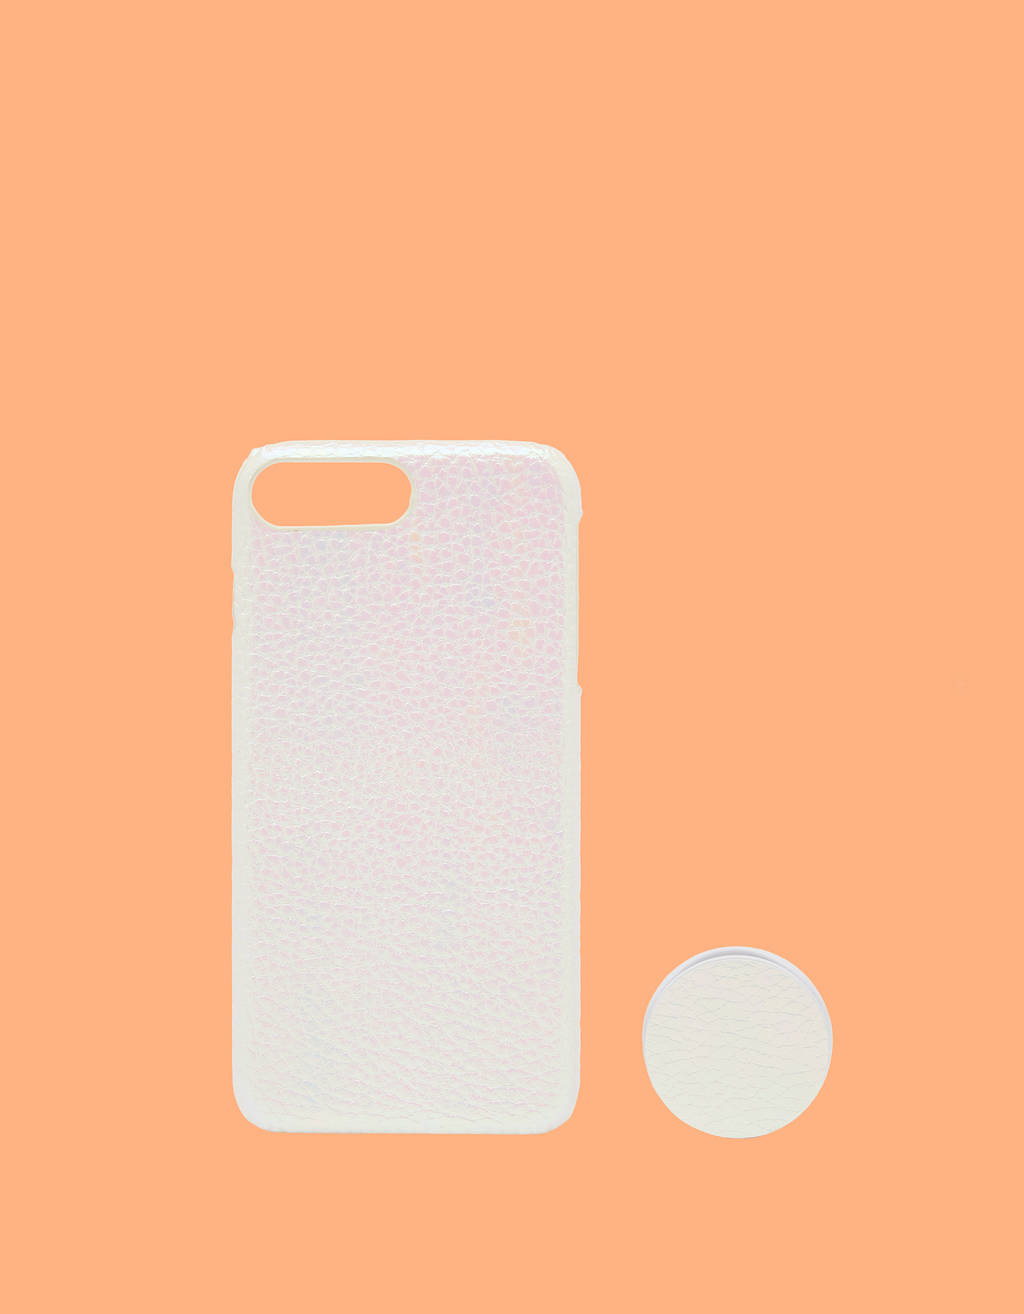 Carcasa con anillo adhesivo iPhone 6 Plus / 7 Plus / 8 Plus